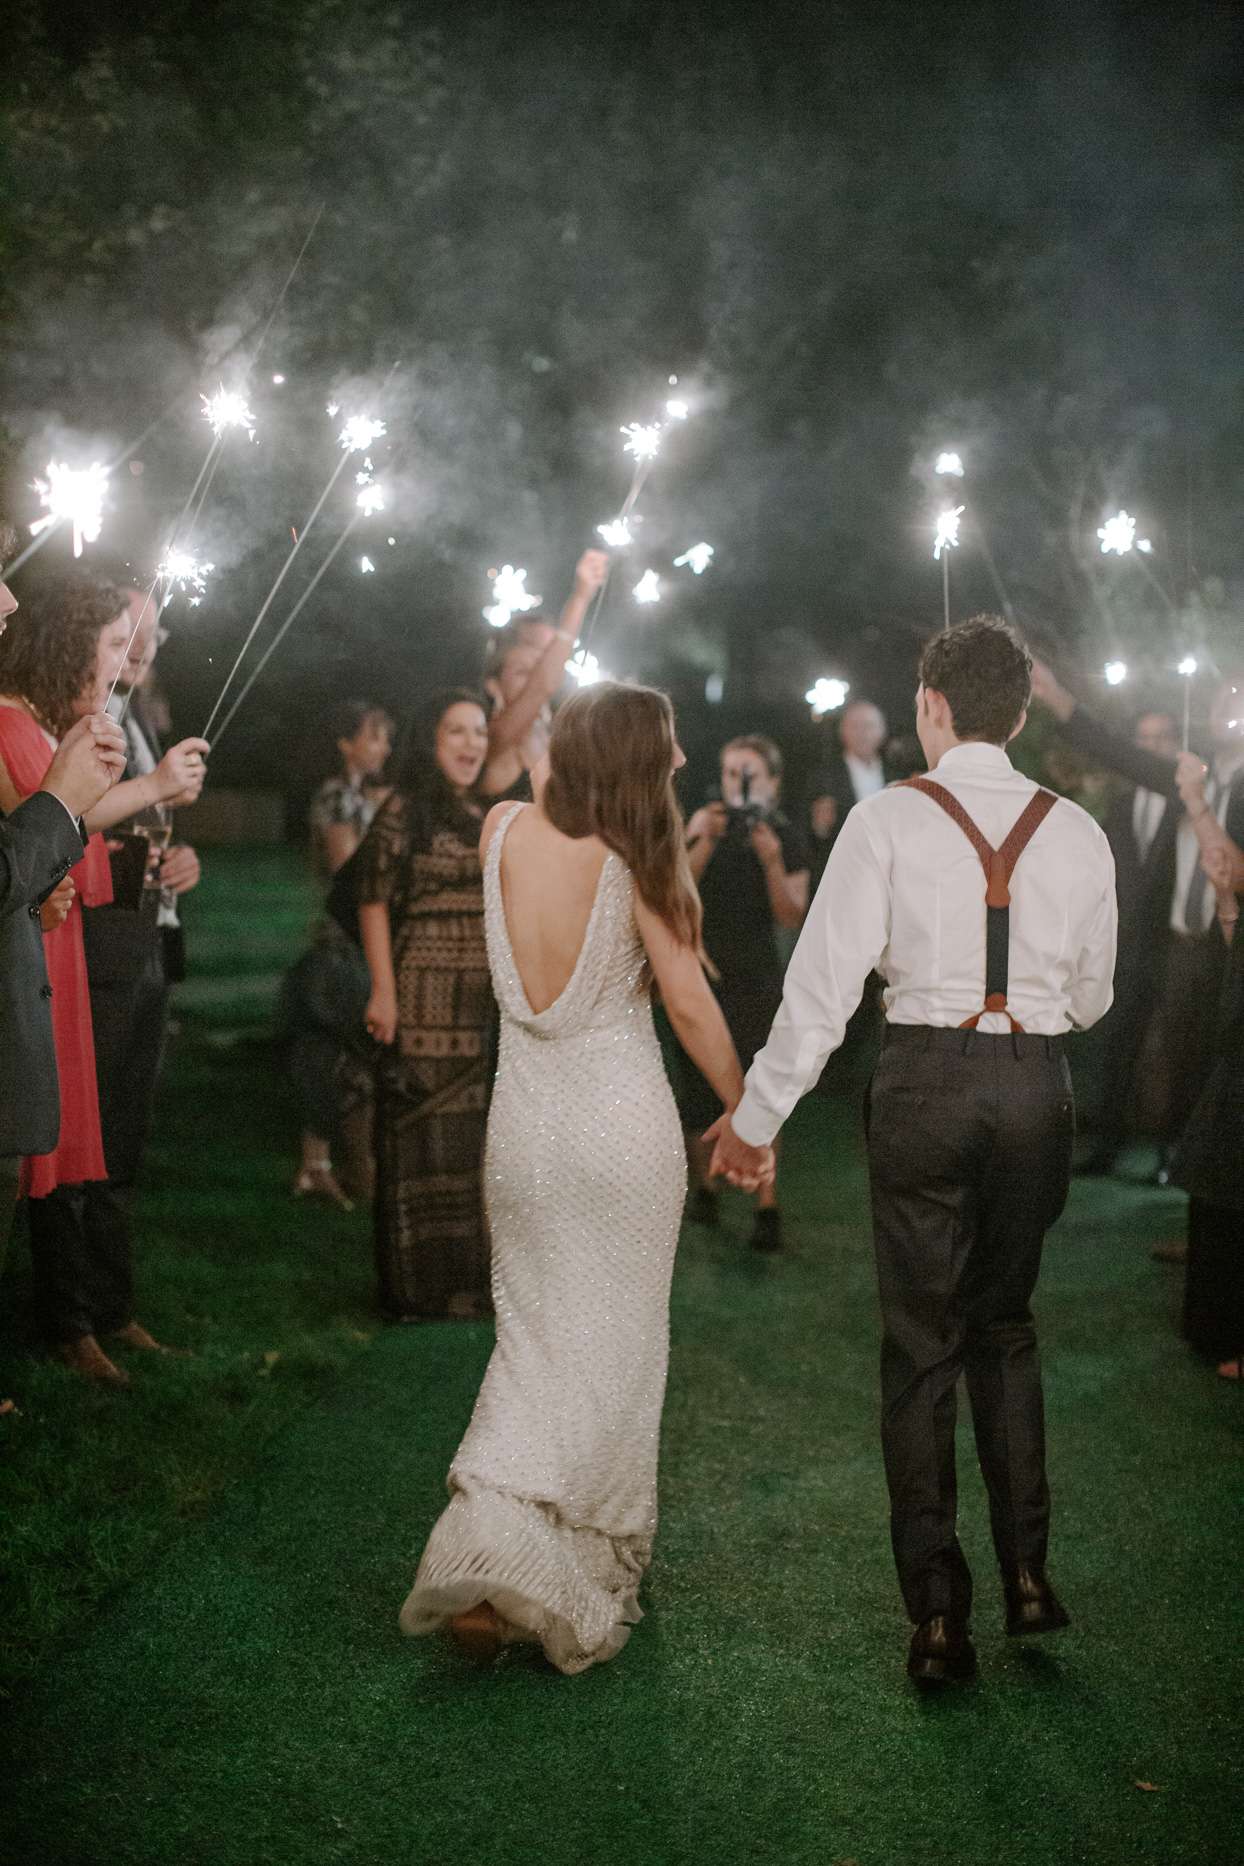 wedding couple existing while guests hold sparklers